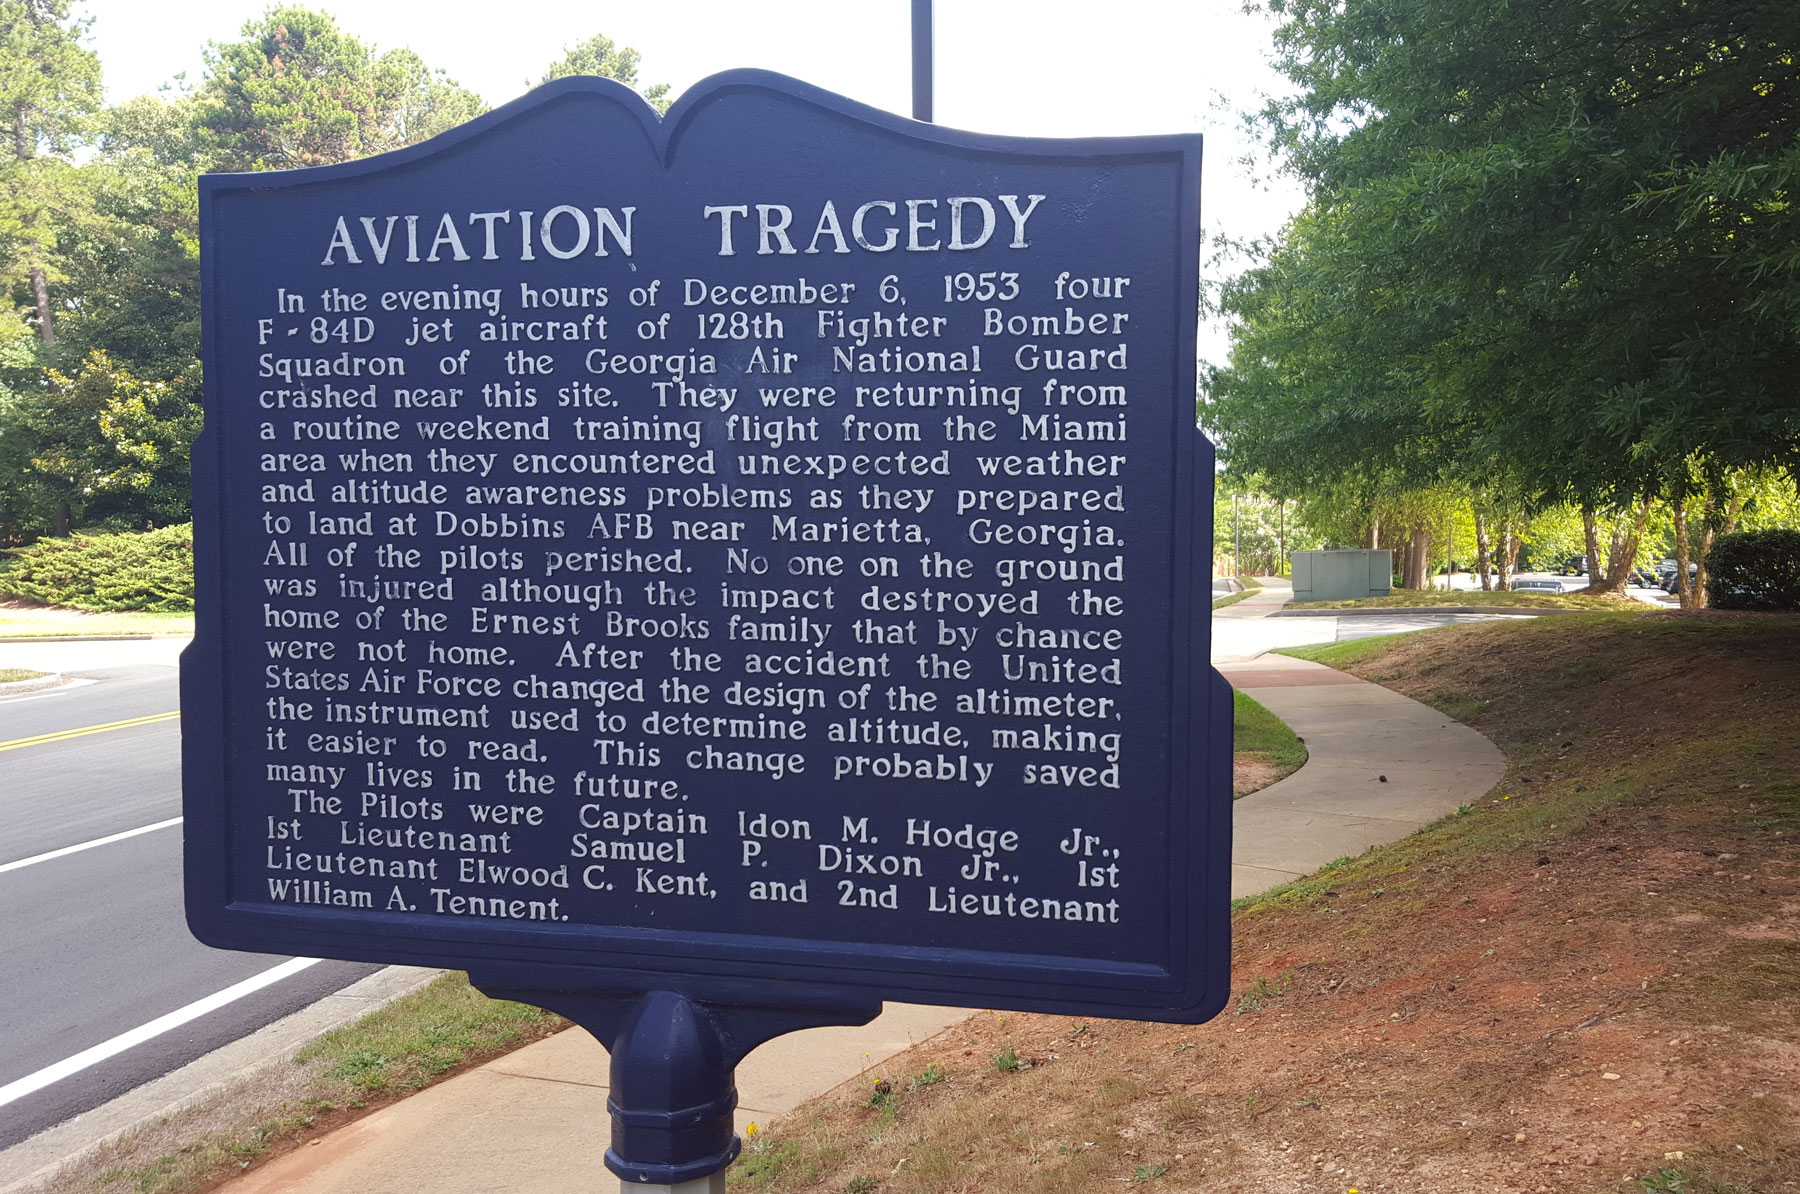 An avaition tragedy near Georgia Campus - Philadelphia College of Osteopathic Medicine prompted the United States Air Force to redesign aircraft altimeters.